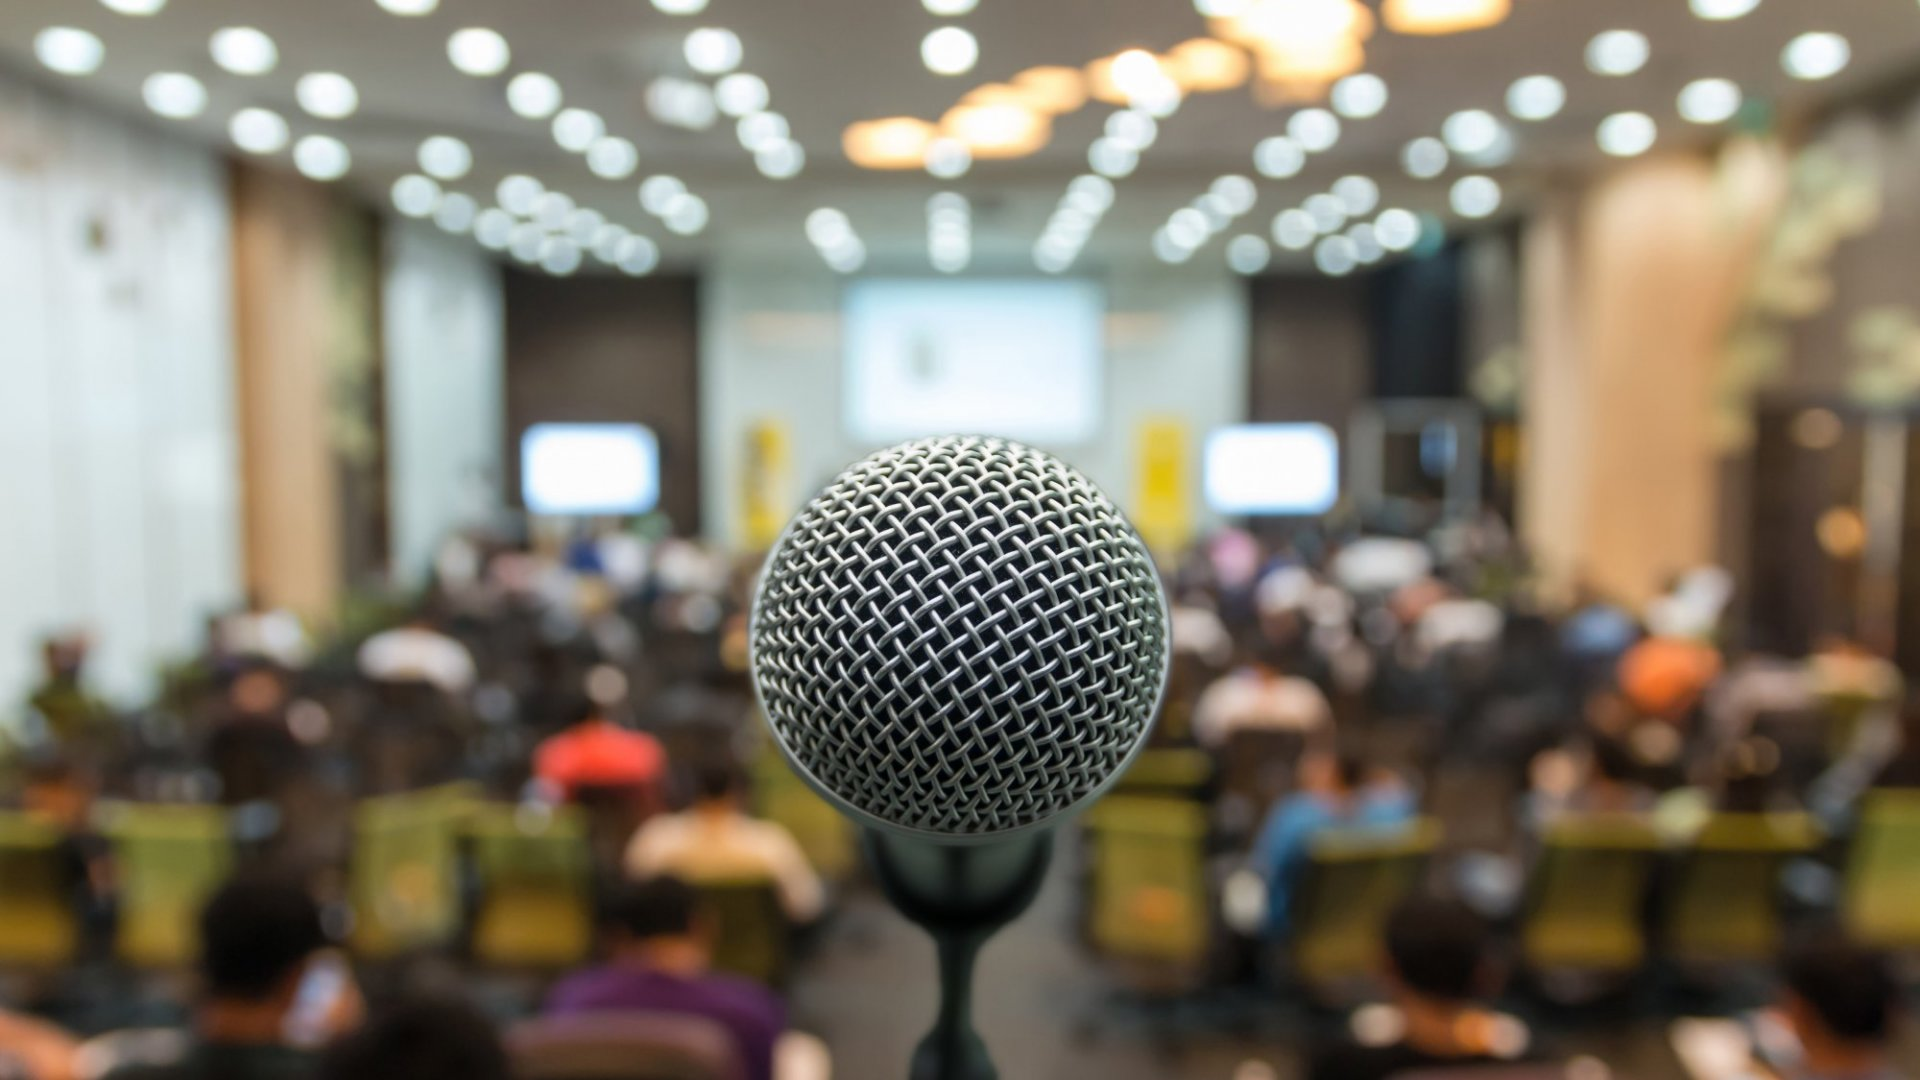 Become a Public Speaking Phenom With These 8 Simple Tips